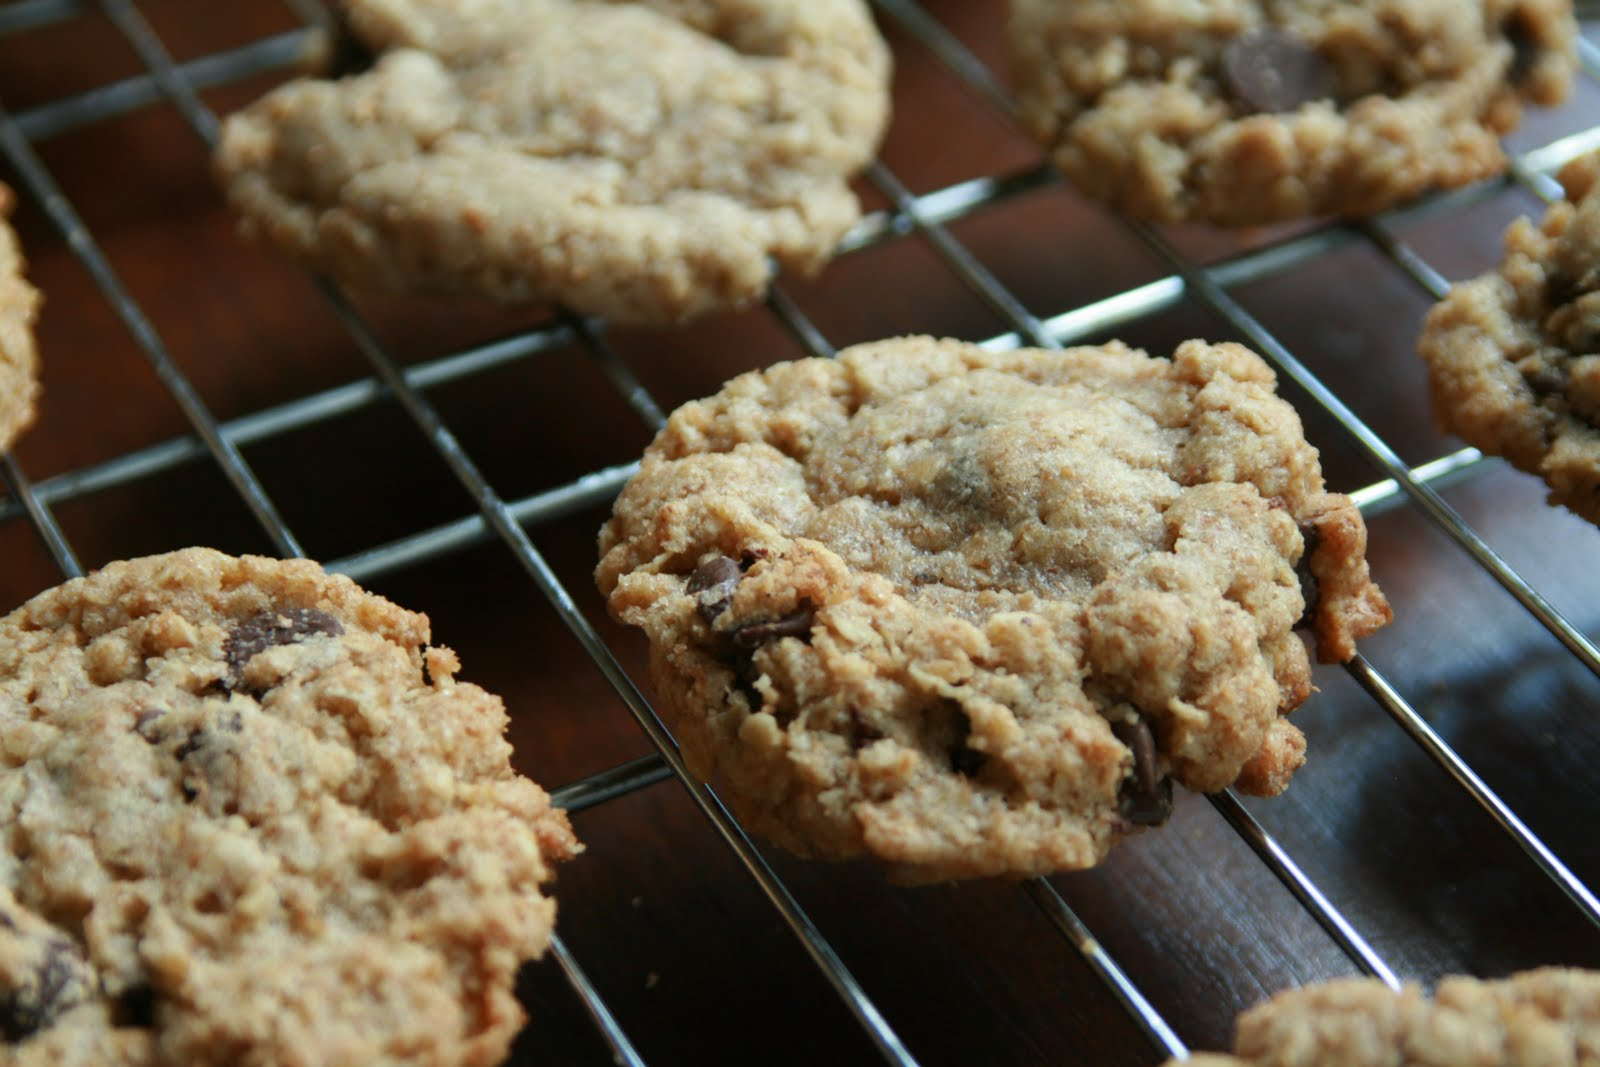 Cook Bake & Decorate: Whole Wheat Chocolate Chip Cookies